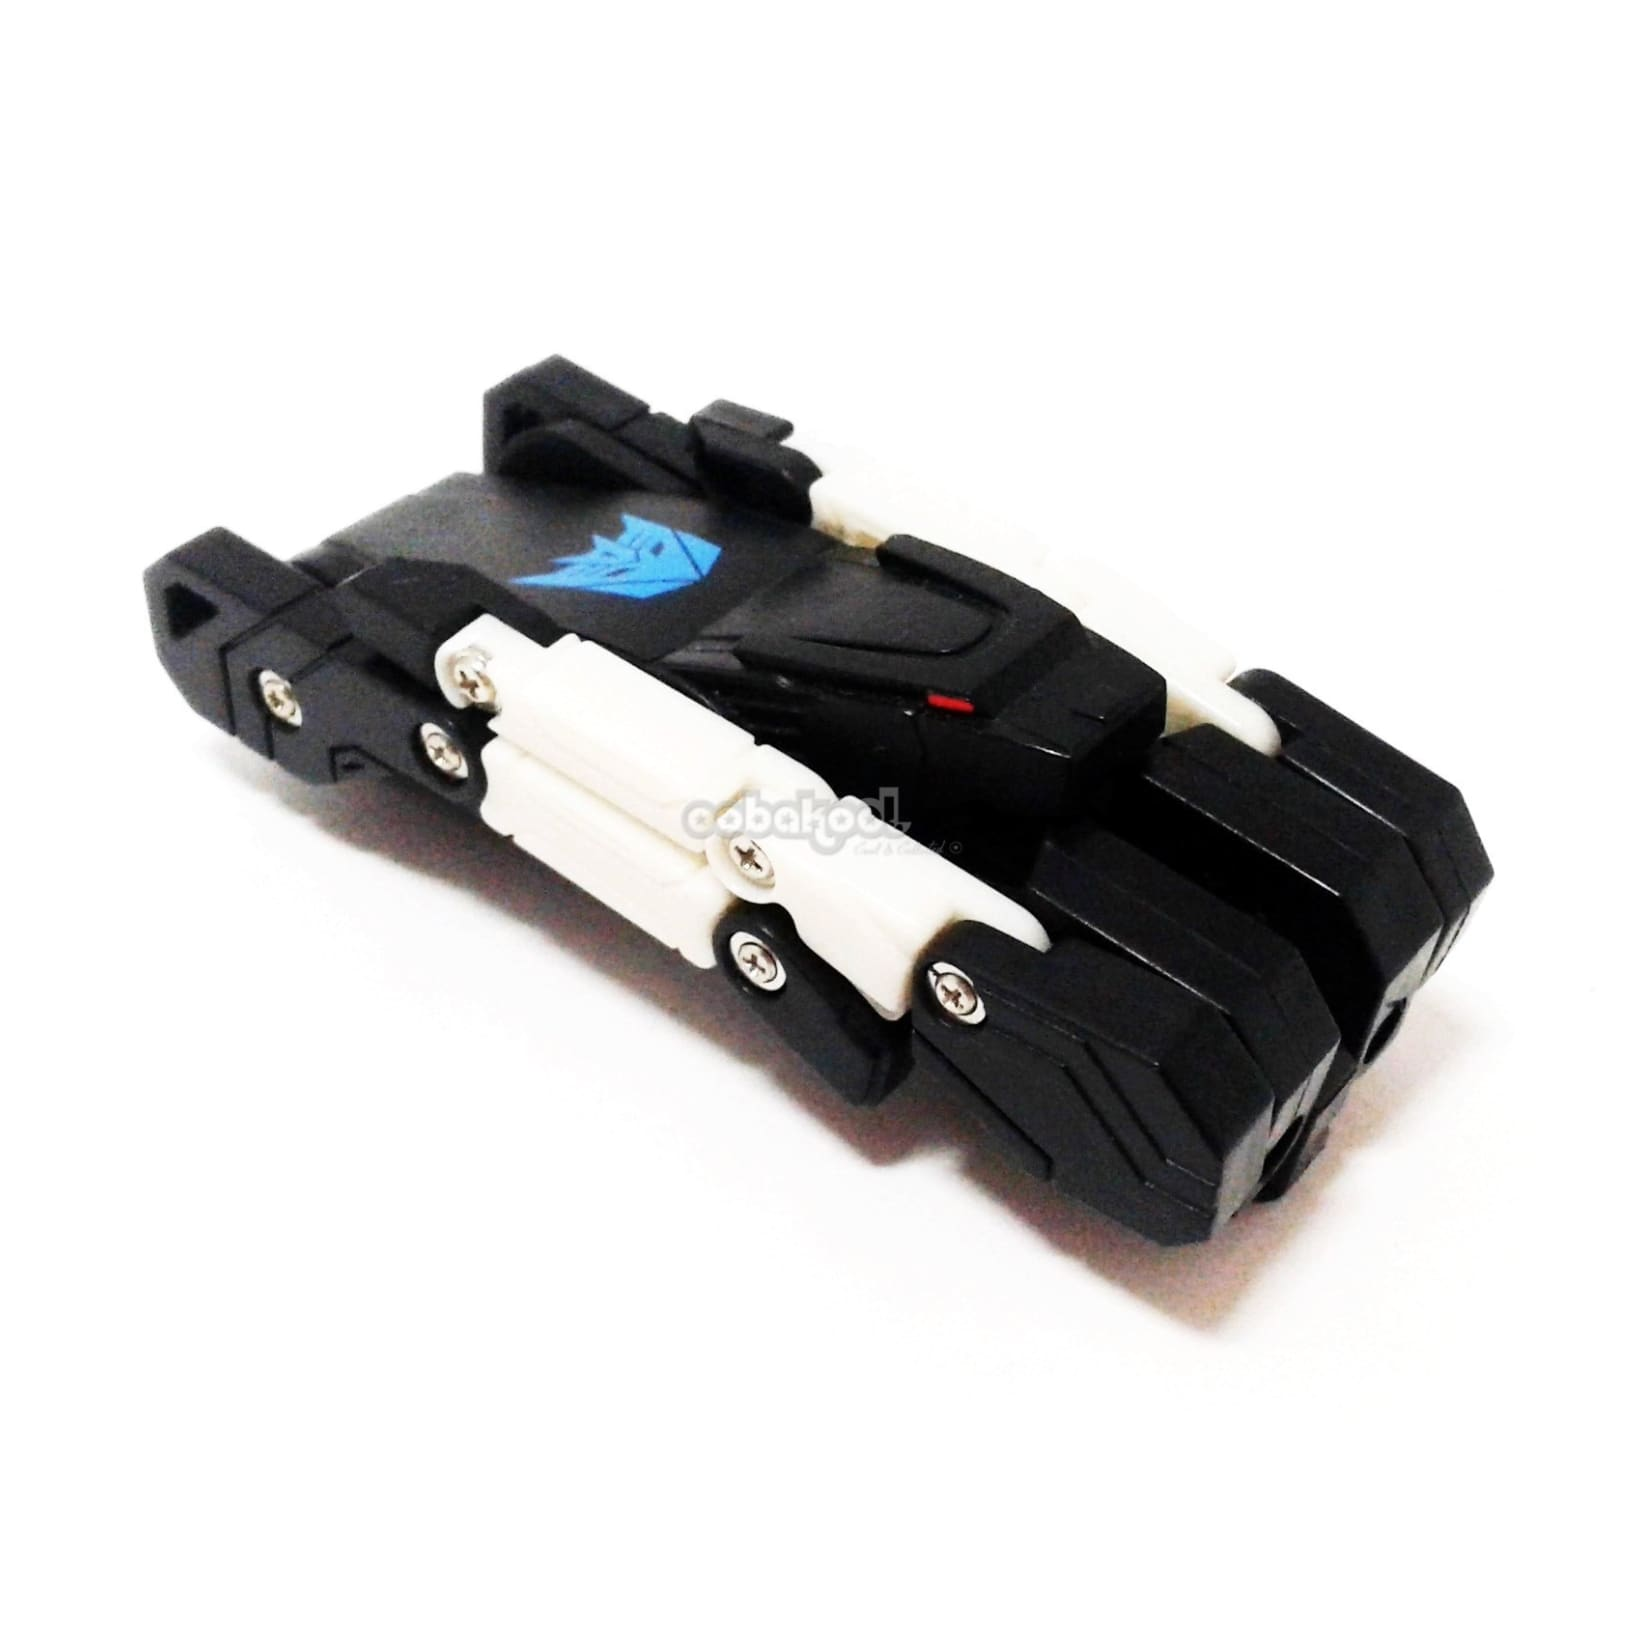 Flash Memory Drive / 8Gb Usb 2.0 Limited Edition Transformers Gadget